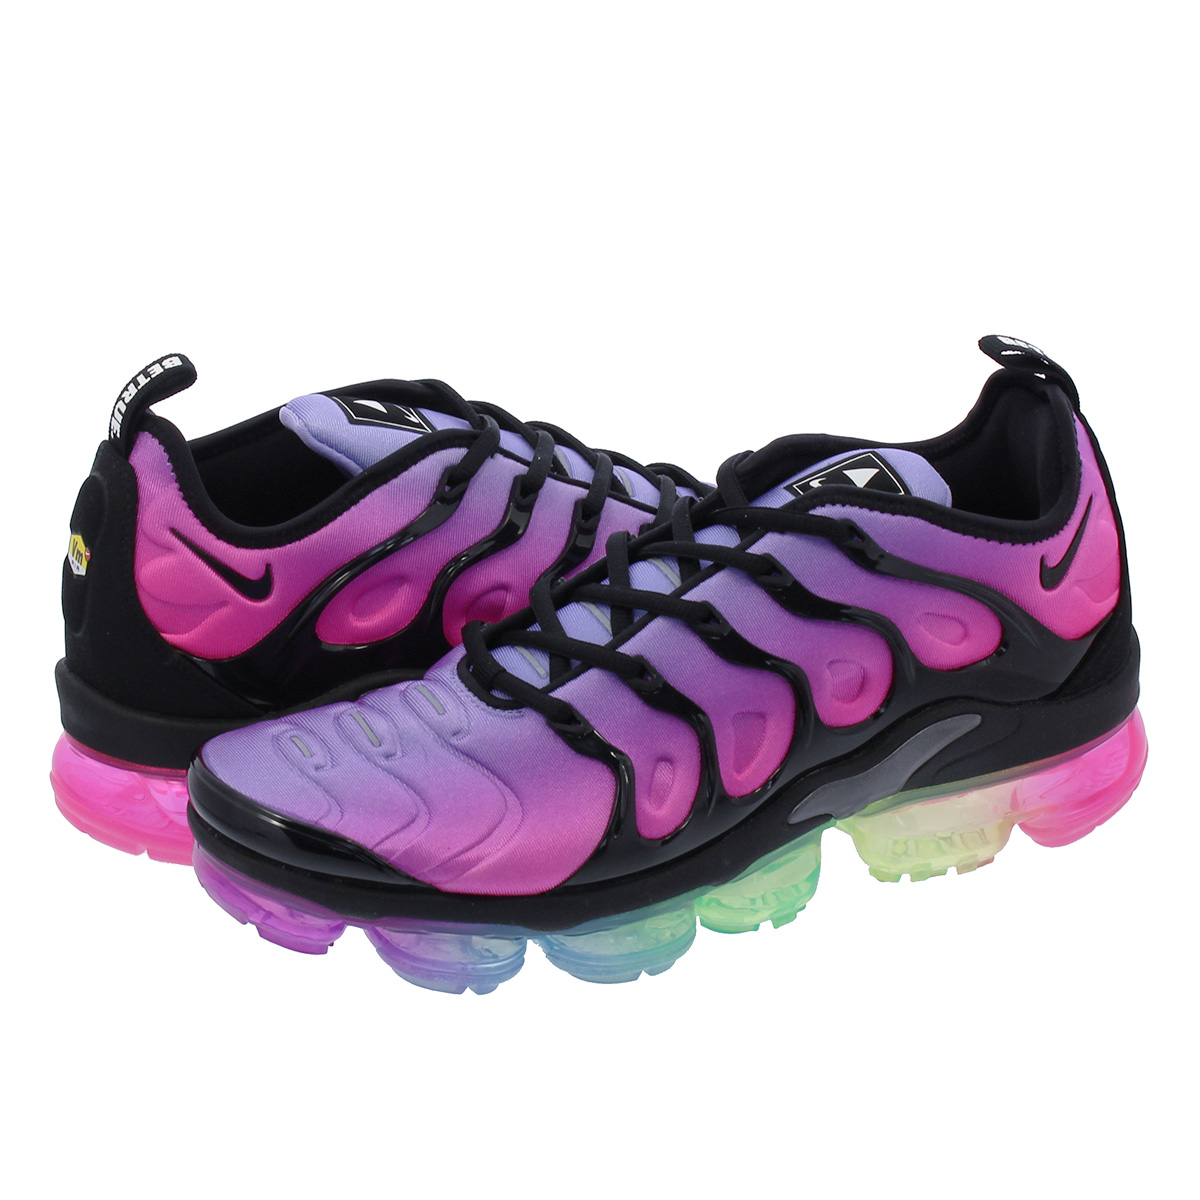 NIKE AIR VAPORMAX PLUS Nike vapor max plus PURPLE PULSE PINK BLAST MULTI  COLOR BLACK ar4791-500 7e55386ef4